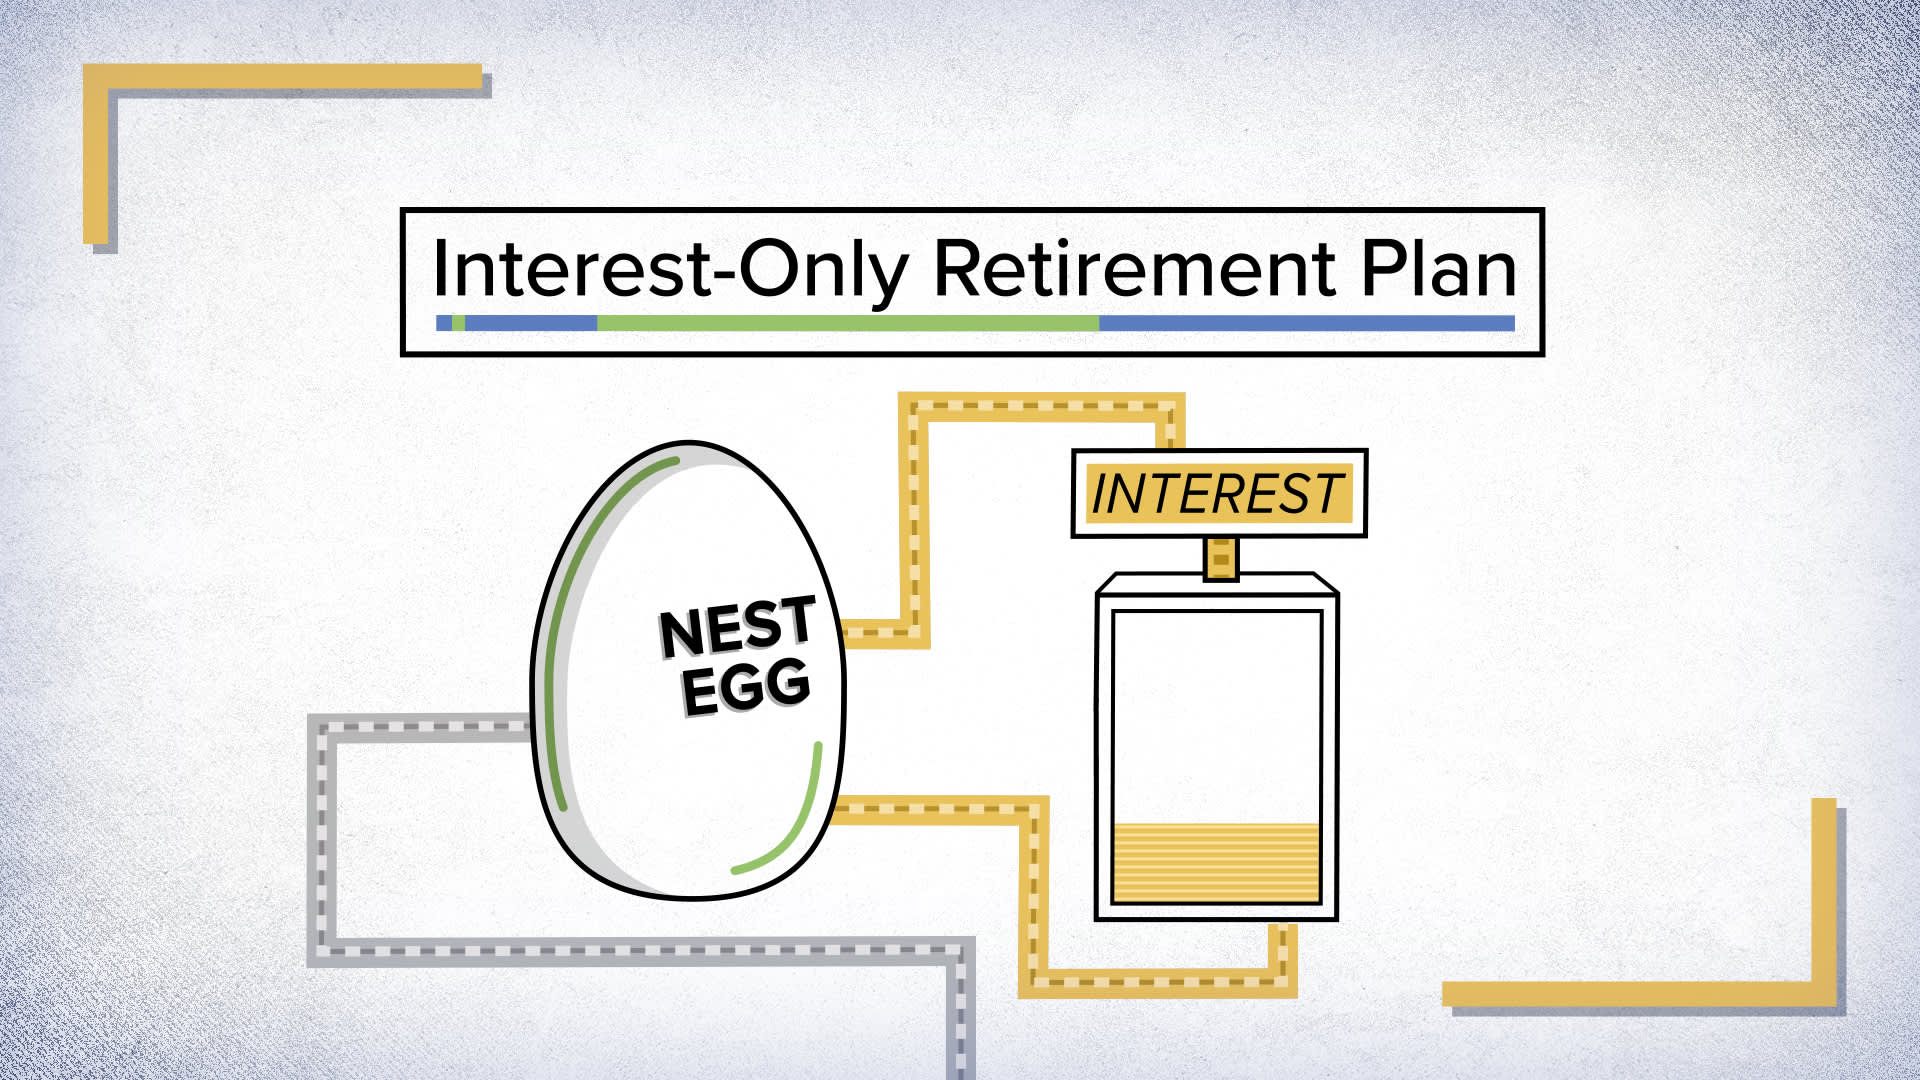 How to earn $40,000 in interest every year in retirement